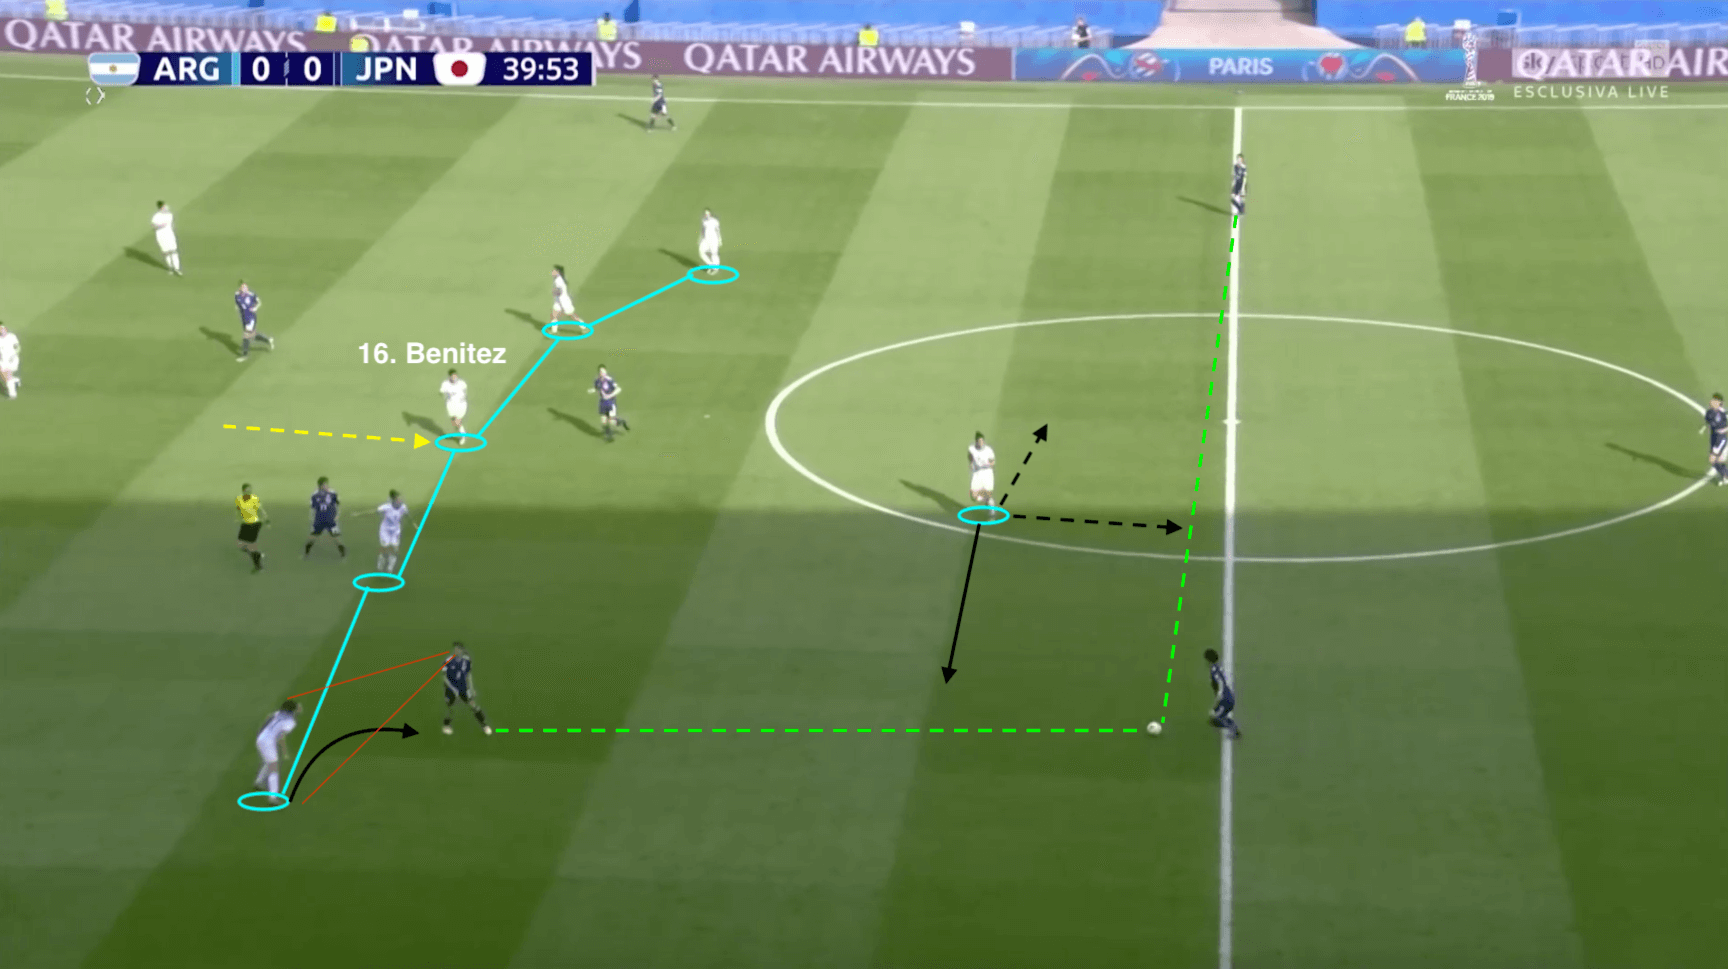 FIFA Women's World Cup 2019 Tactical Preview Analysis: England vs Argentina